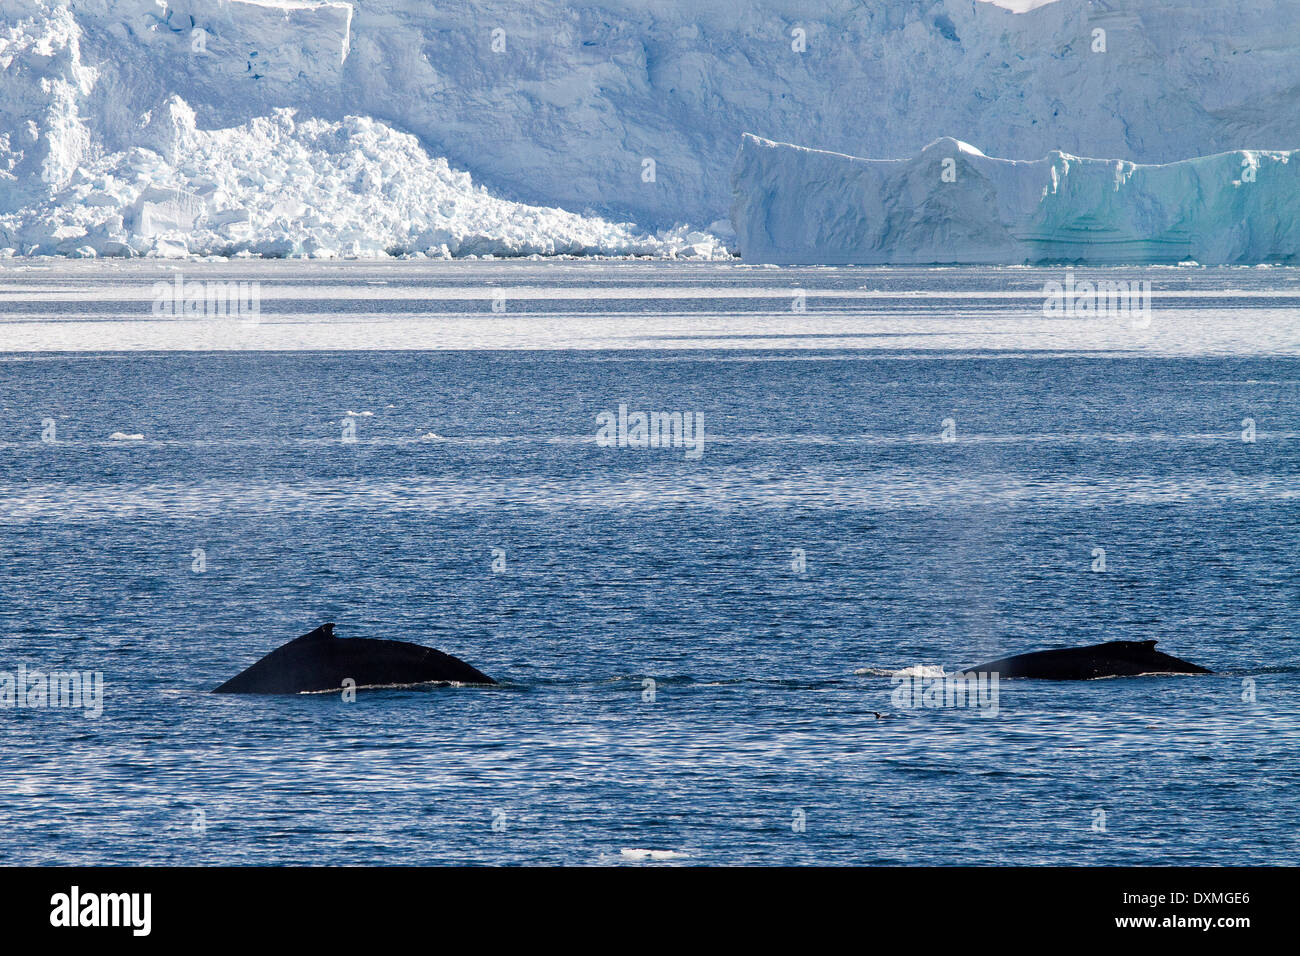 Antarctica whales, Humpback whales Antarctic, Megaptera novaeangliae. Whale dorsal fin. - Stock Image